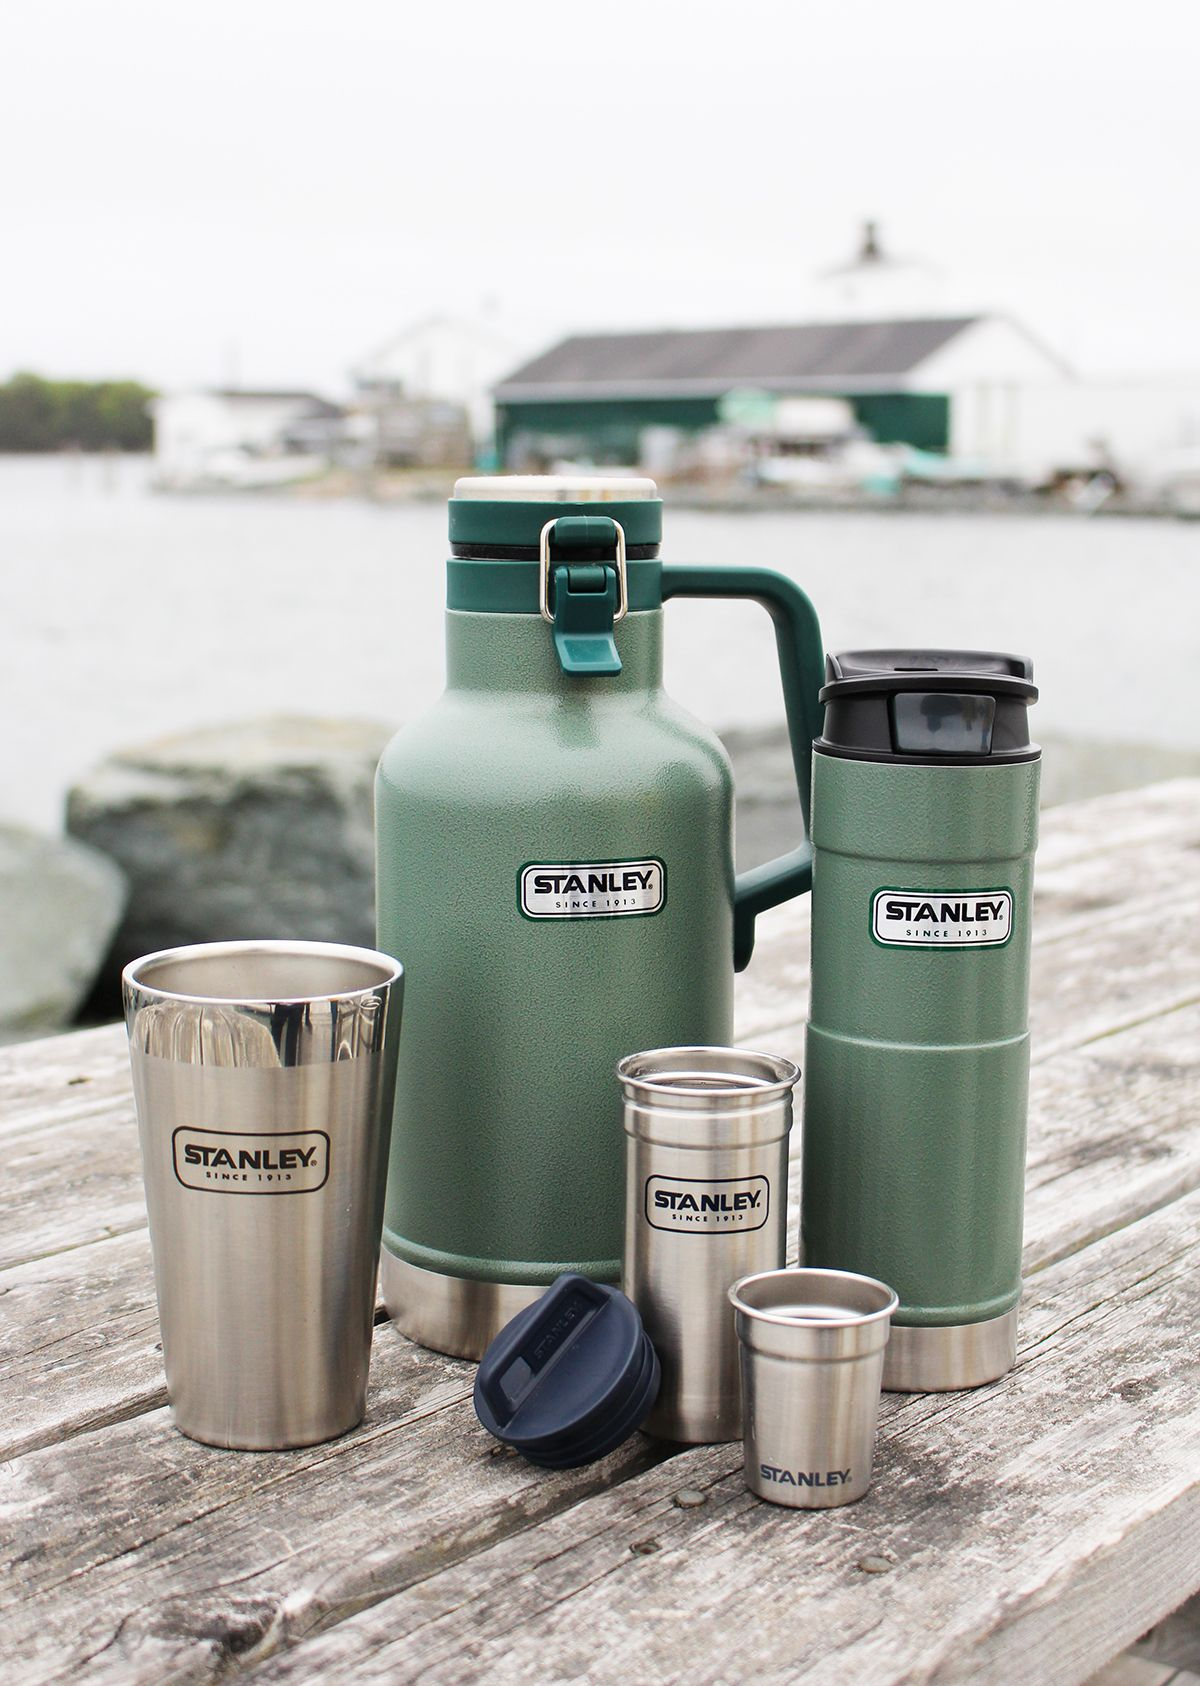 Fathers day gift ideas from stanley brand camping